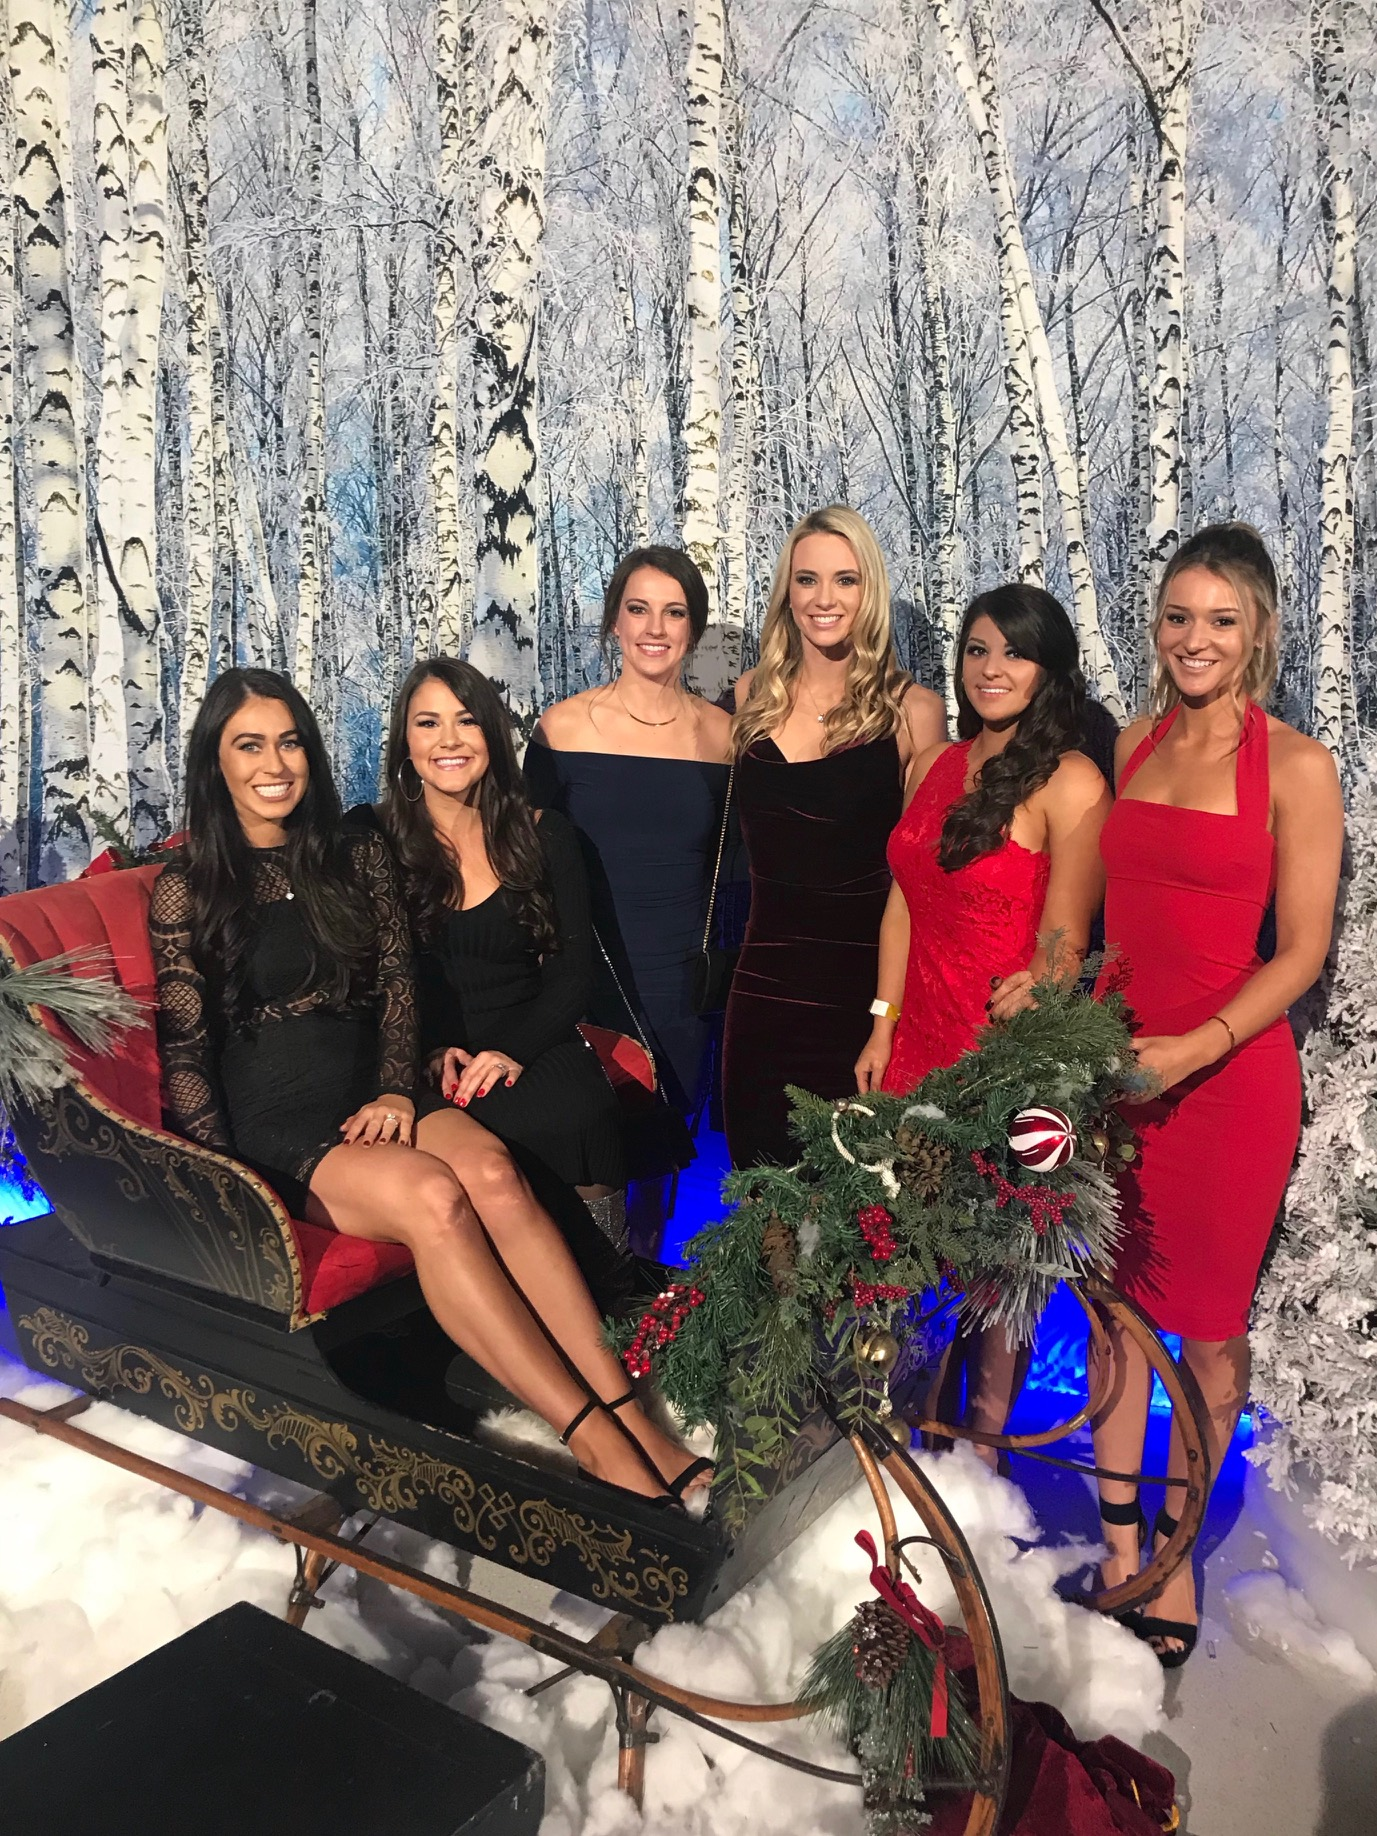 49ers Christmas Party - Beyond Casual B